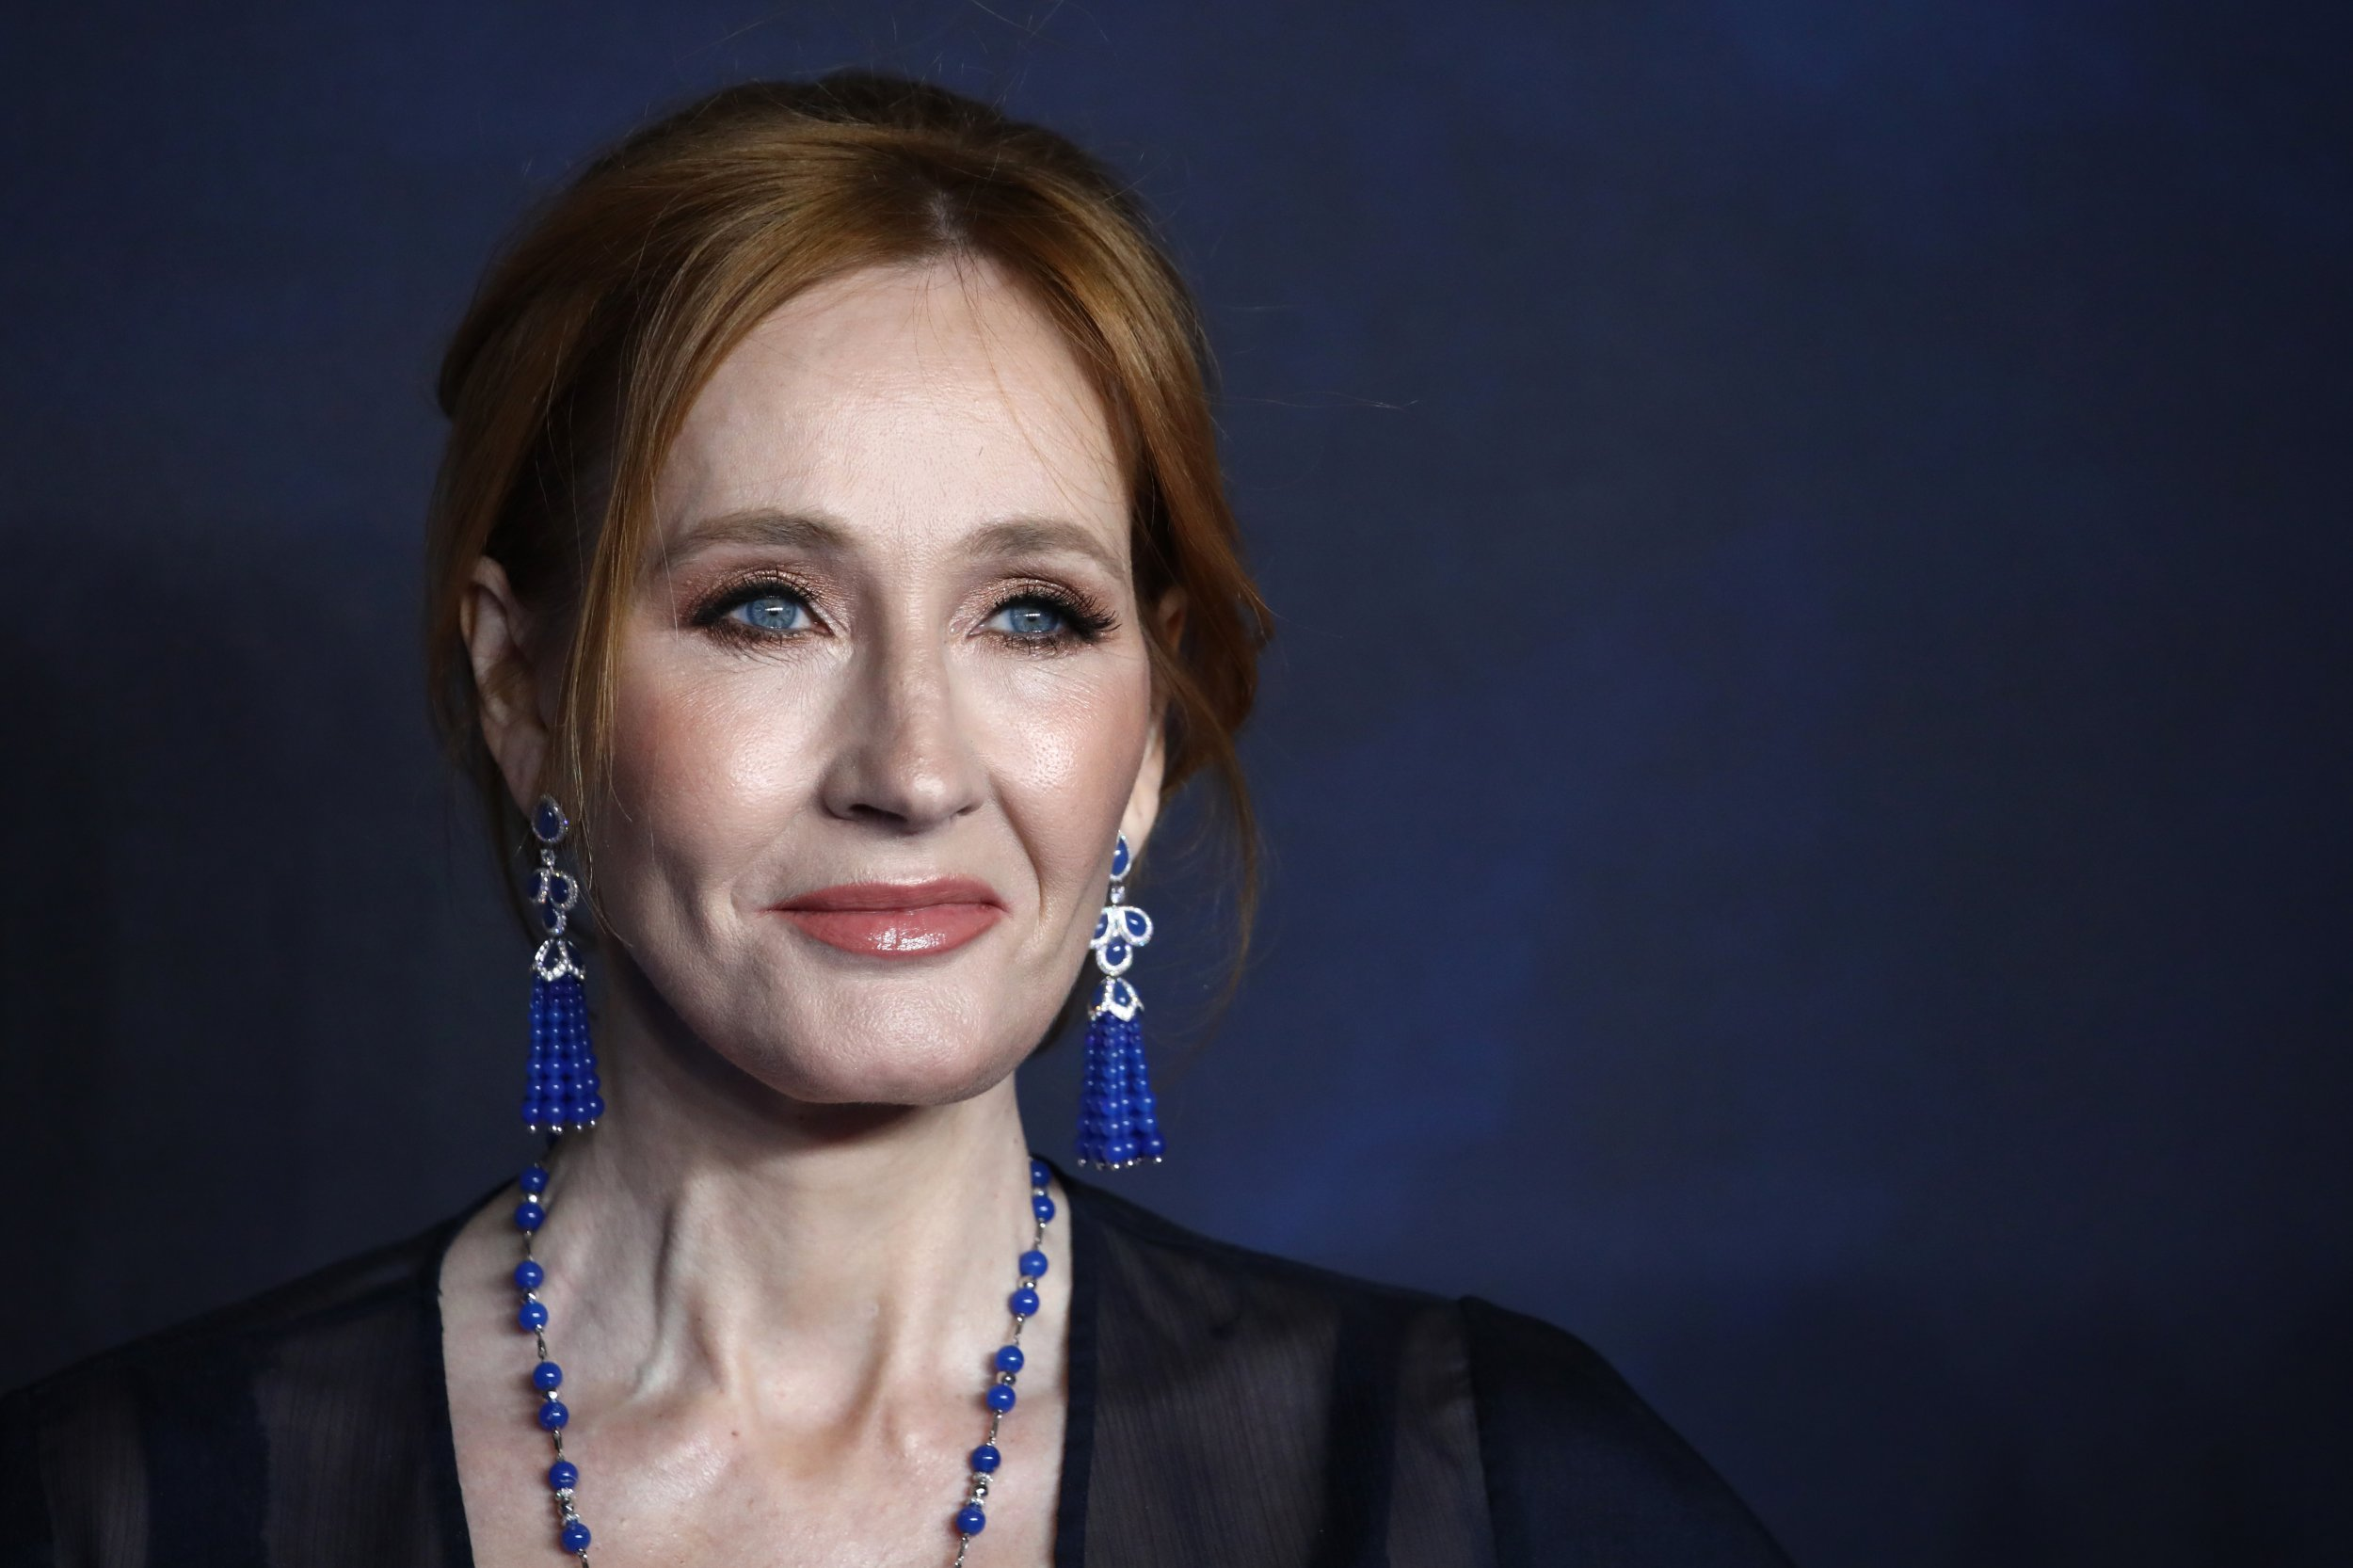 JK Rowling Saying Dumbledore and Grindelwald had 'Intense' Sexual Relationship Upsets Some 'Harry Potter' Fans